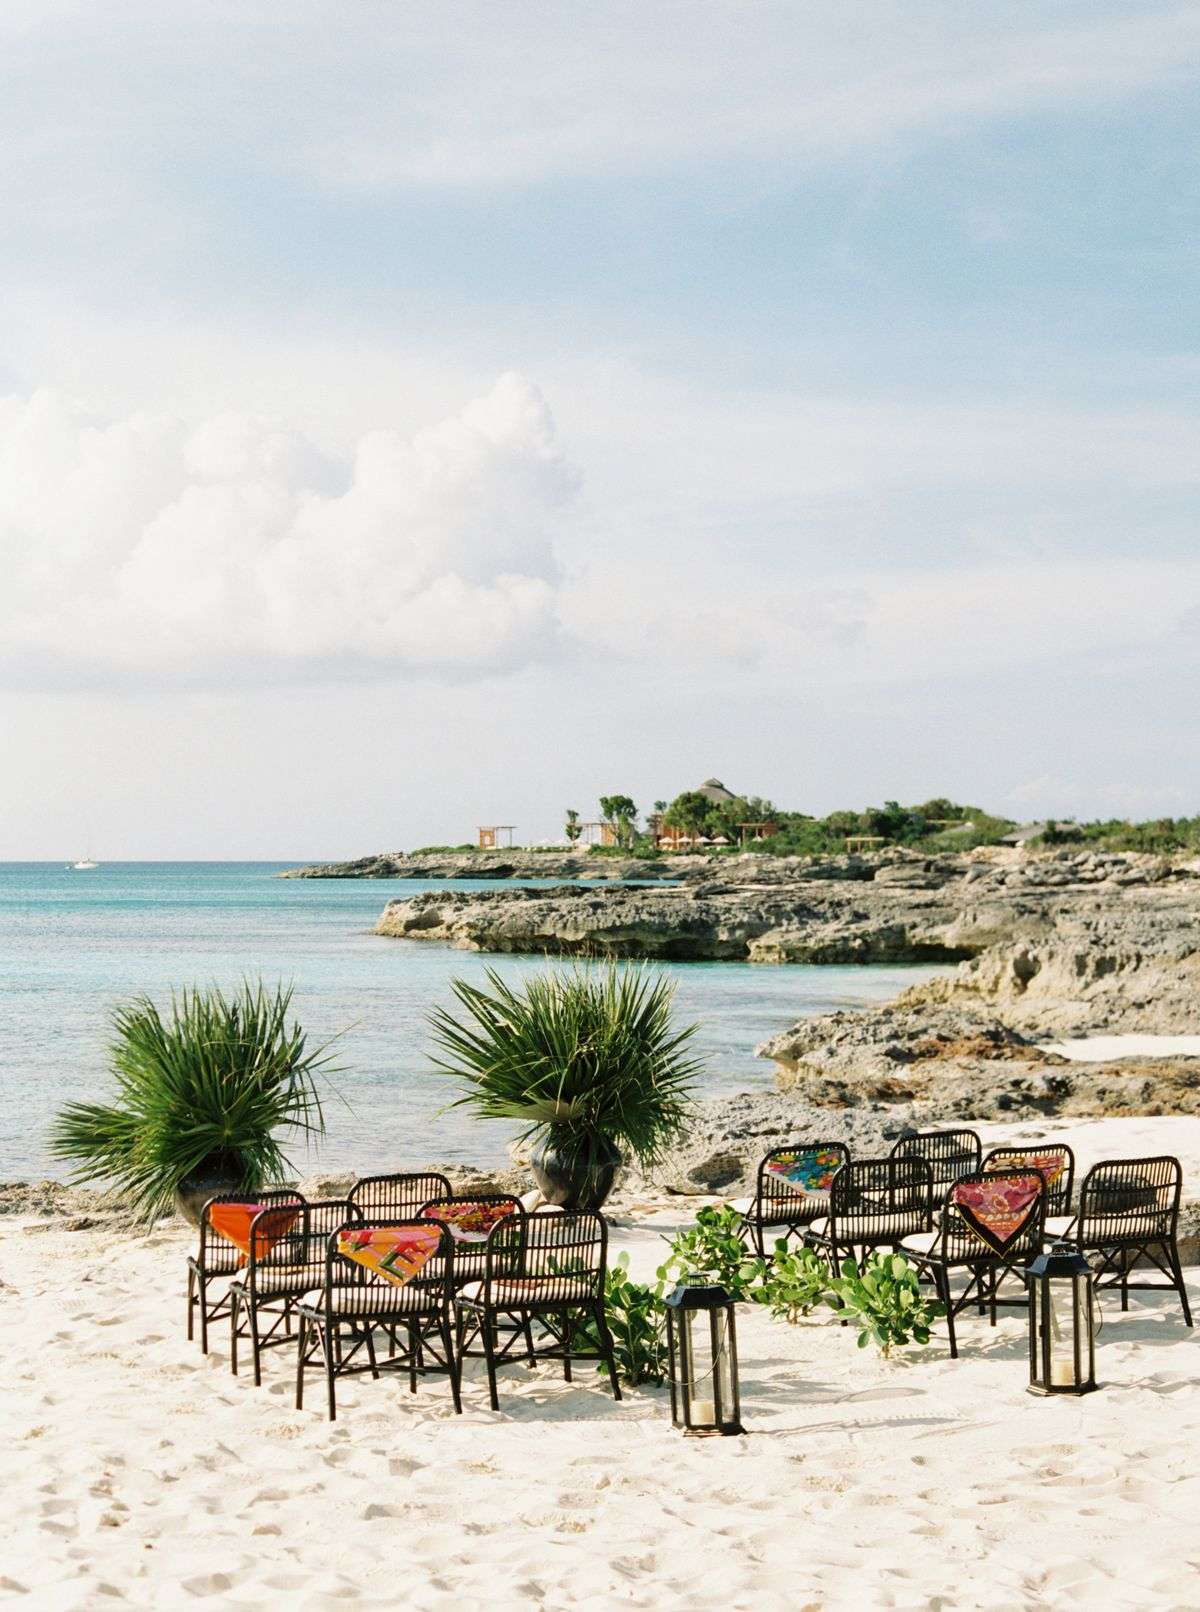 Destination Wedding on a Budget? It's Possible with These